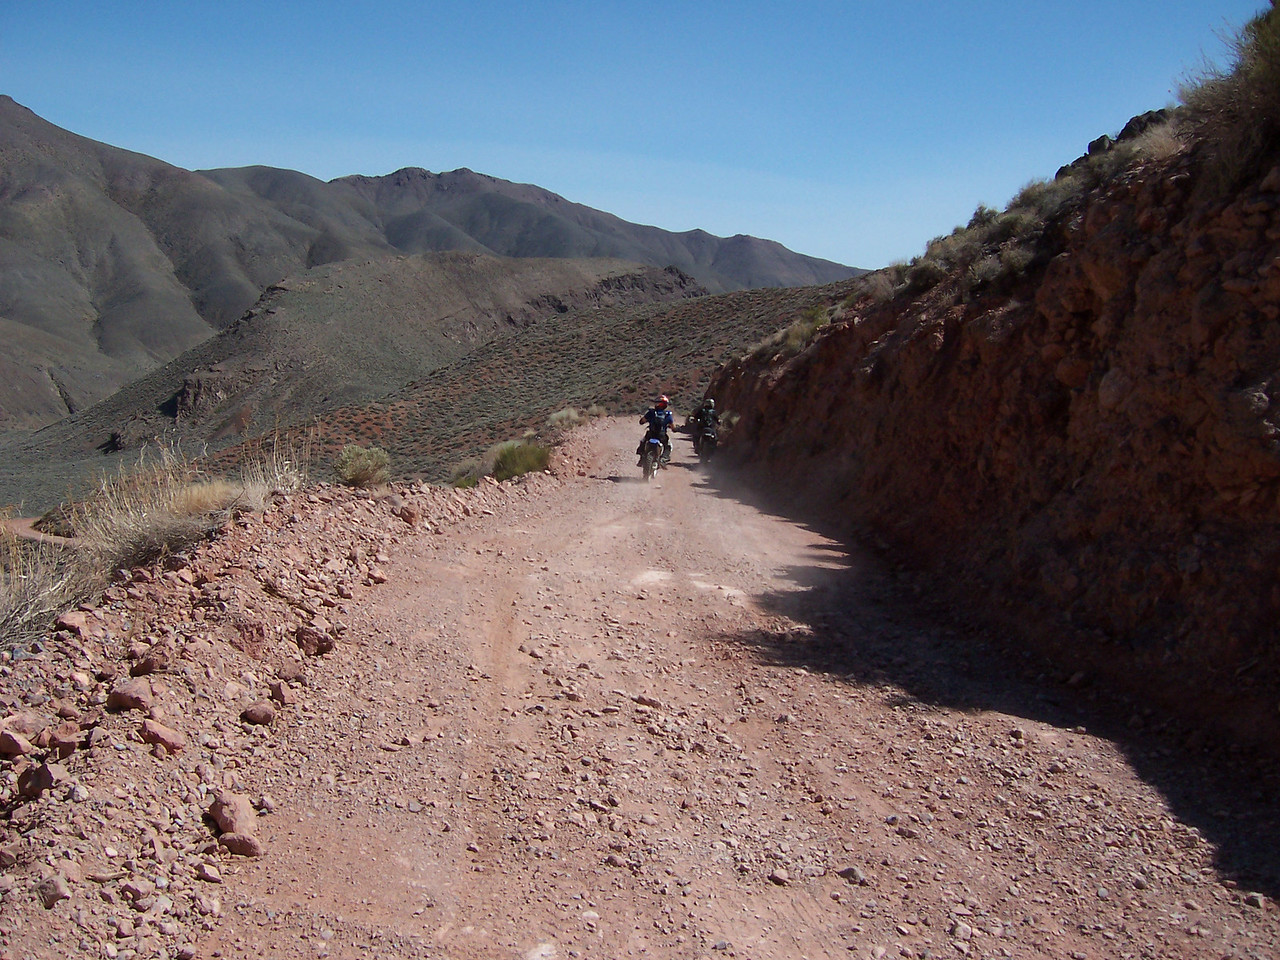 Two dirt bikes went passed us going the wrong way on this one way road...